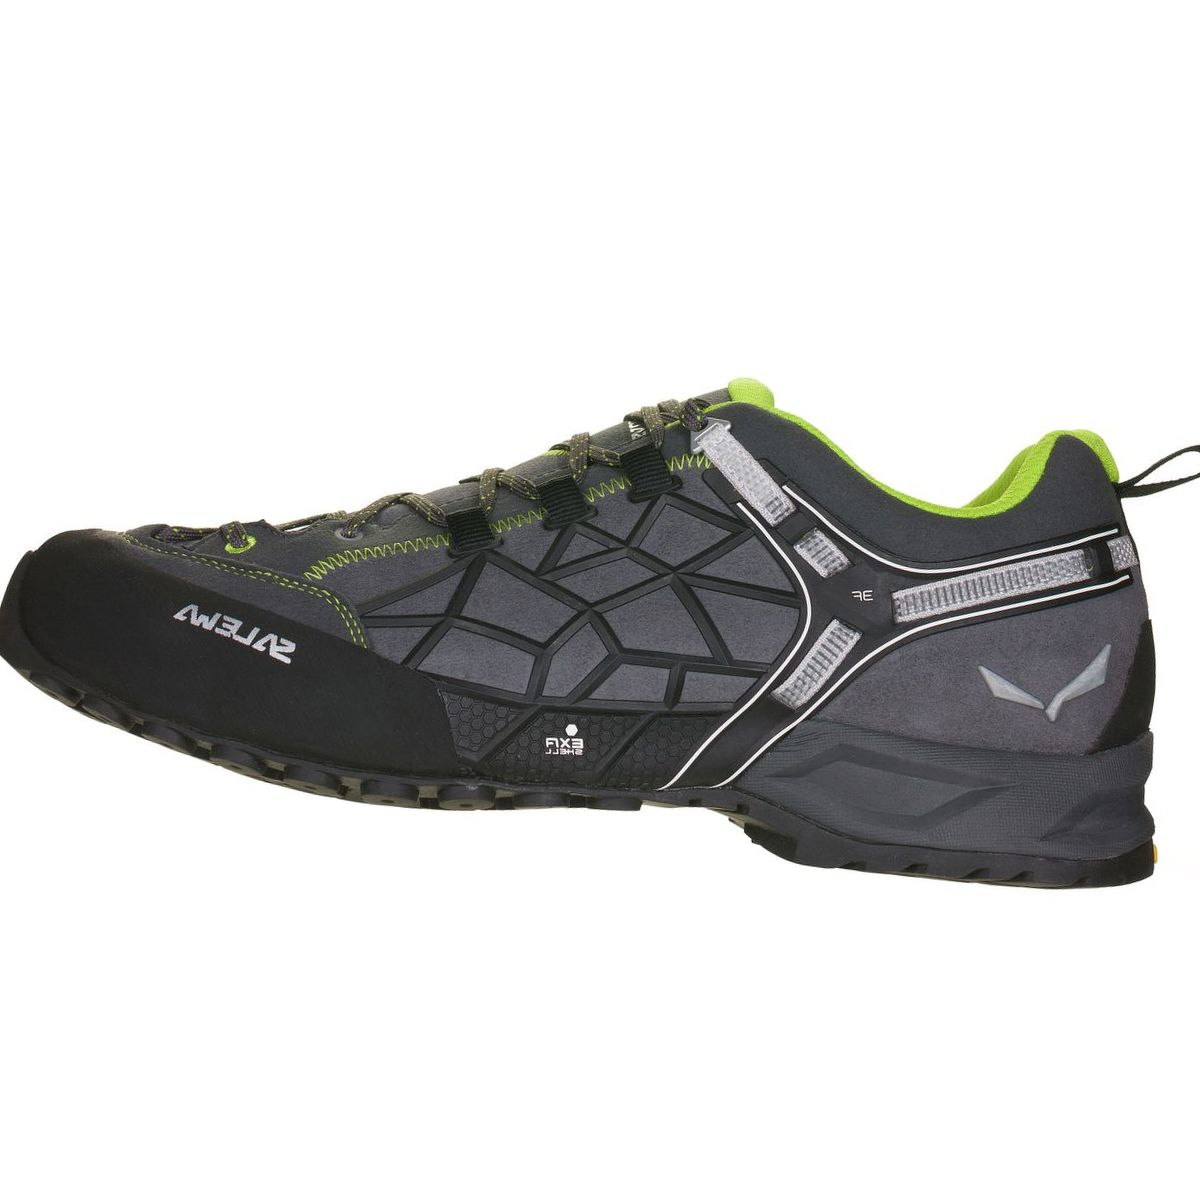 Salewa Wildfire Pro Approach Shoe - Men's